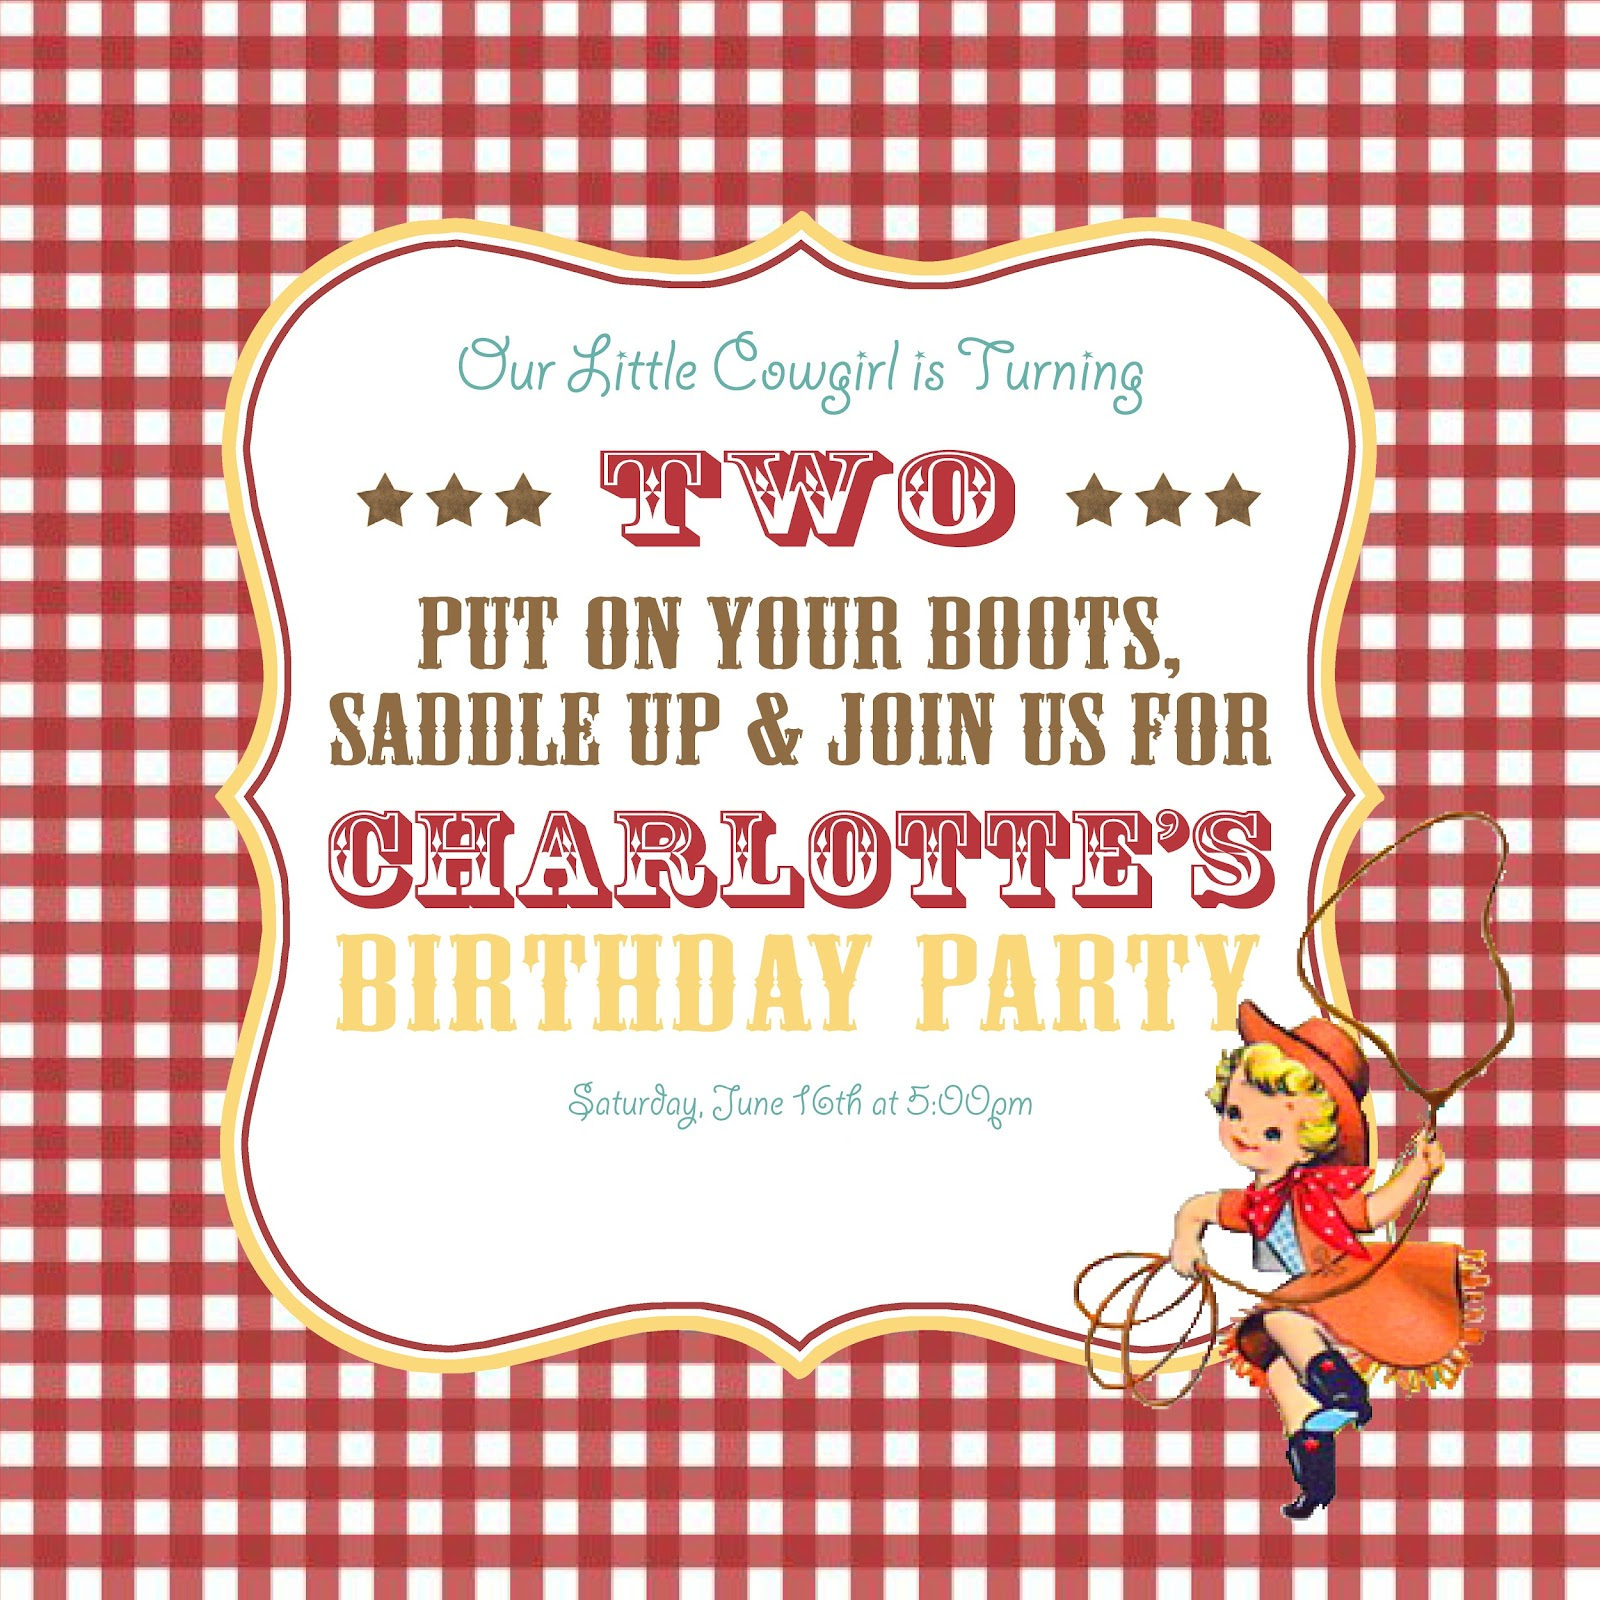 Heres The Invite My Friend Tara From Paper Patch Ink Made Isnt It Adorable